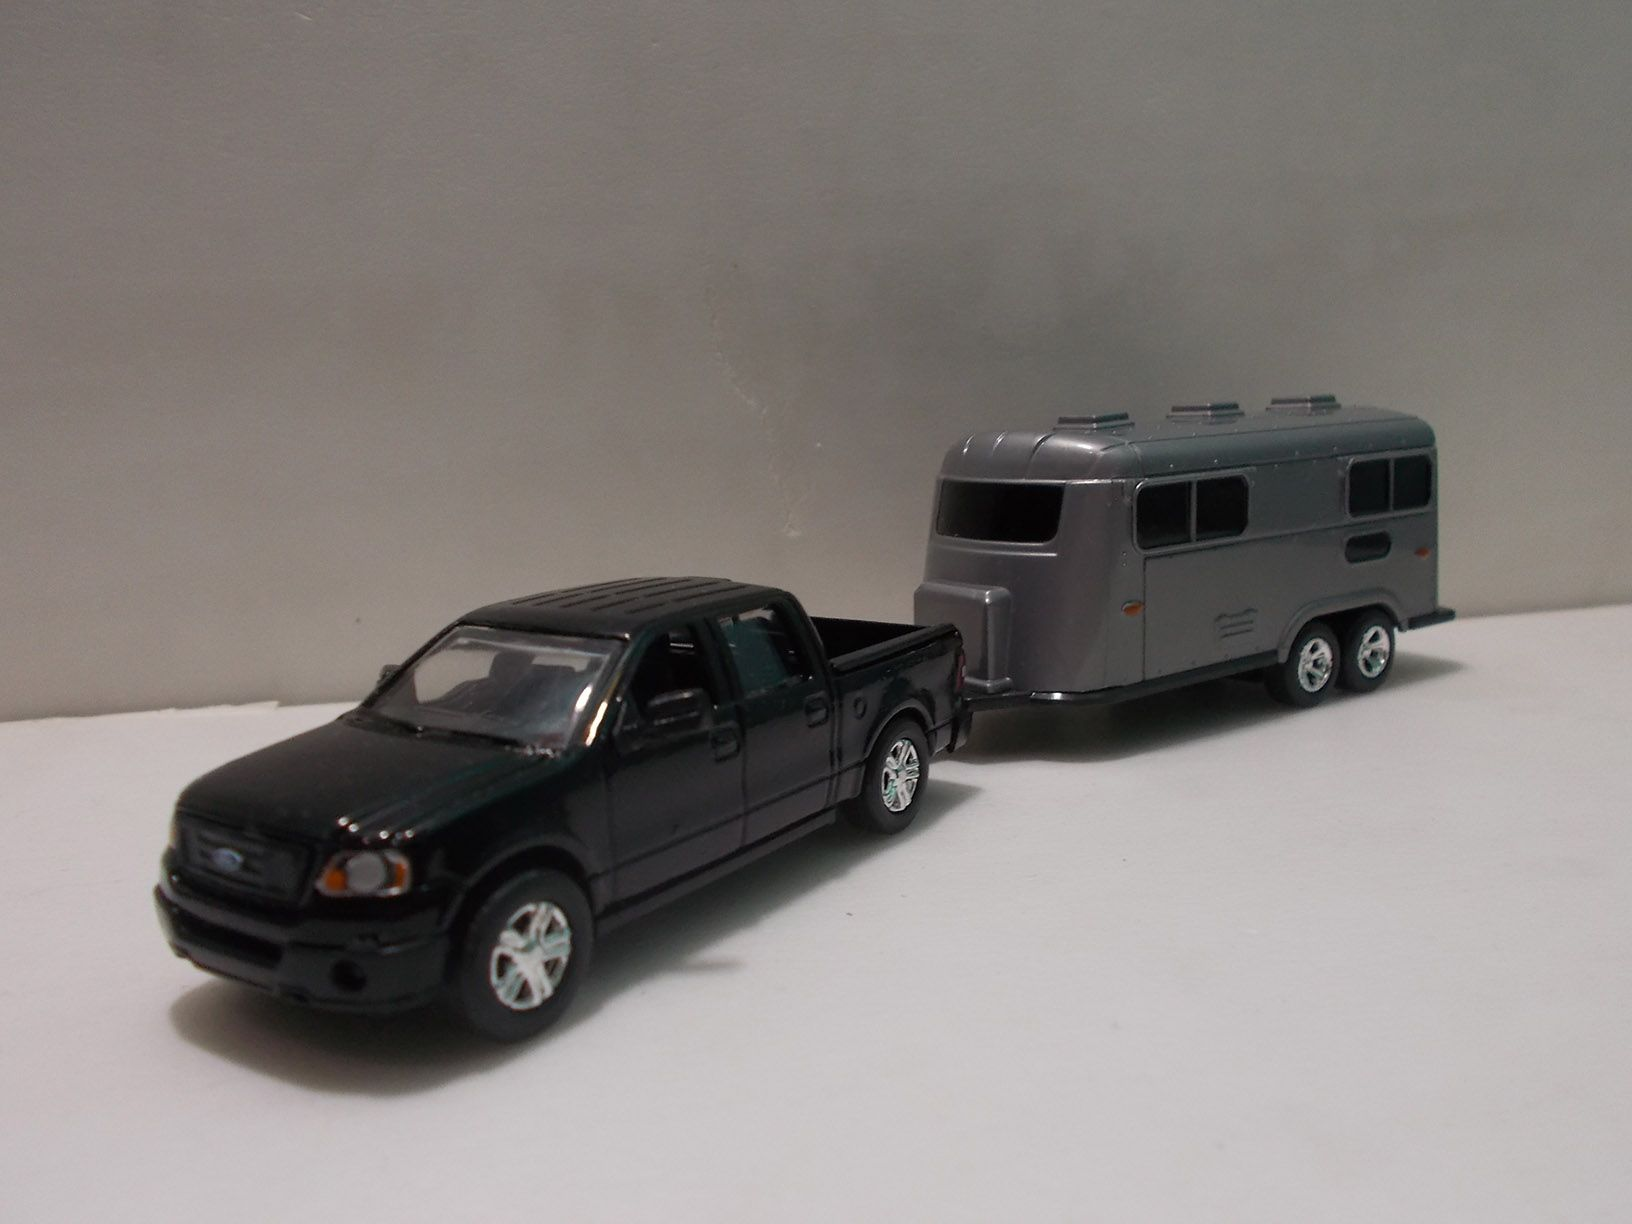 1 64 scale trucks and trailers - Motor Max Ford F 150 With Trailer 1 64 Scale